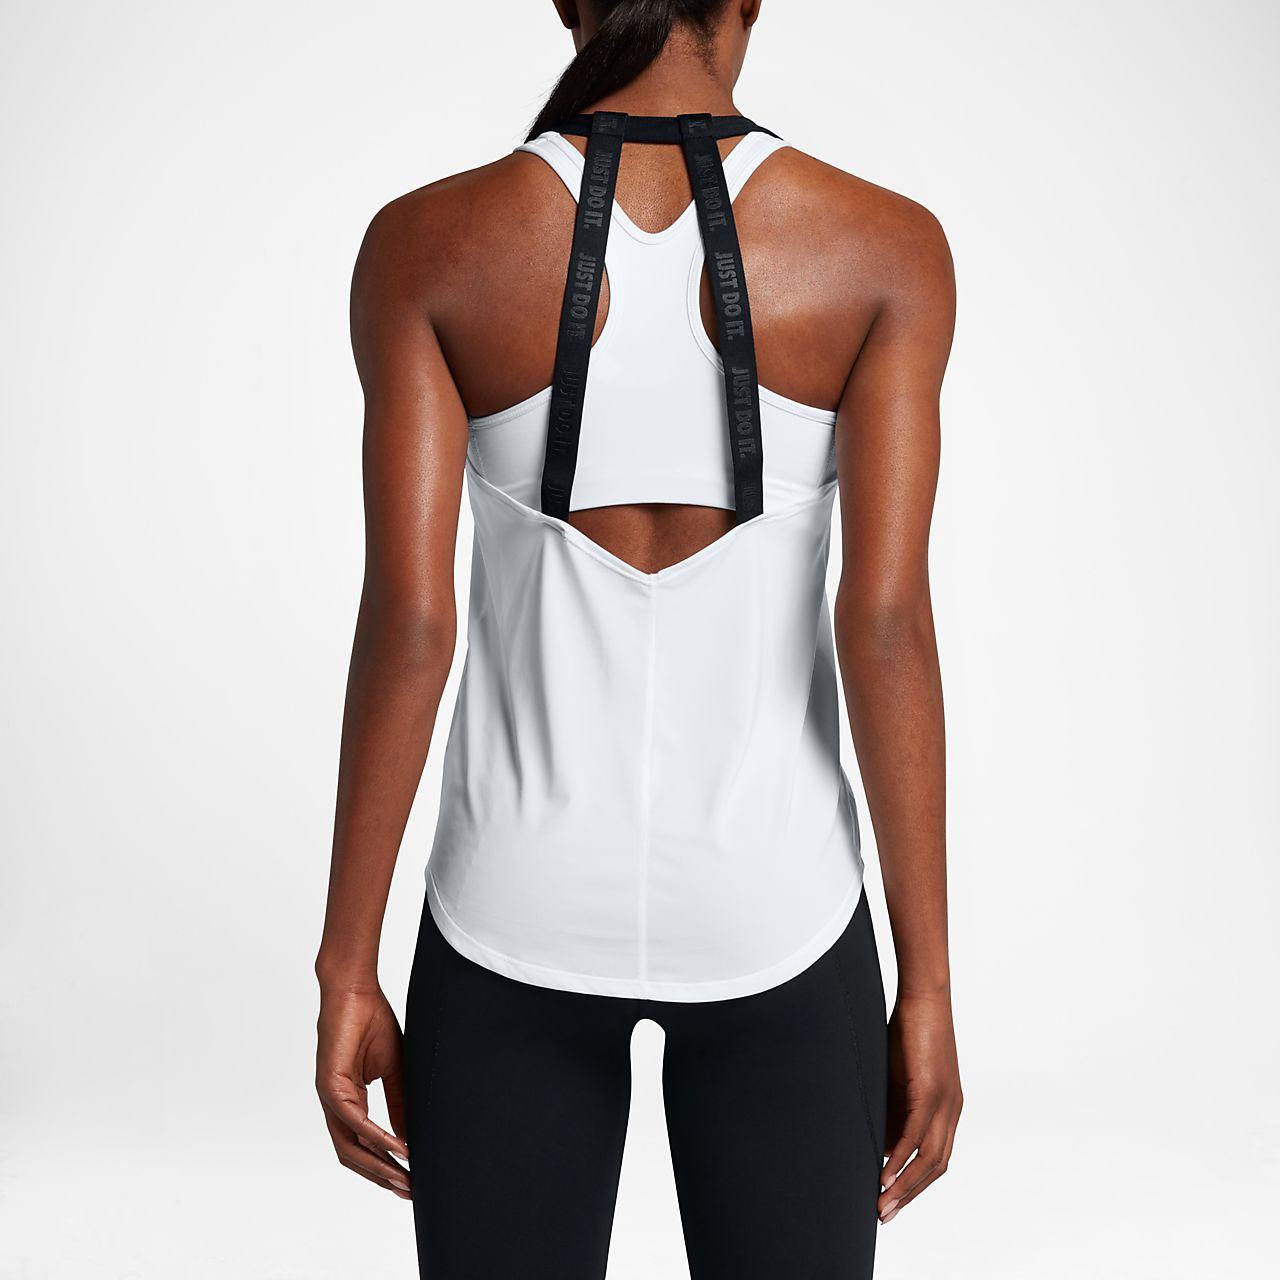 Nike Dry Women's Training Tank Tops Black/White